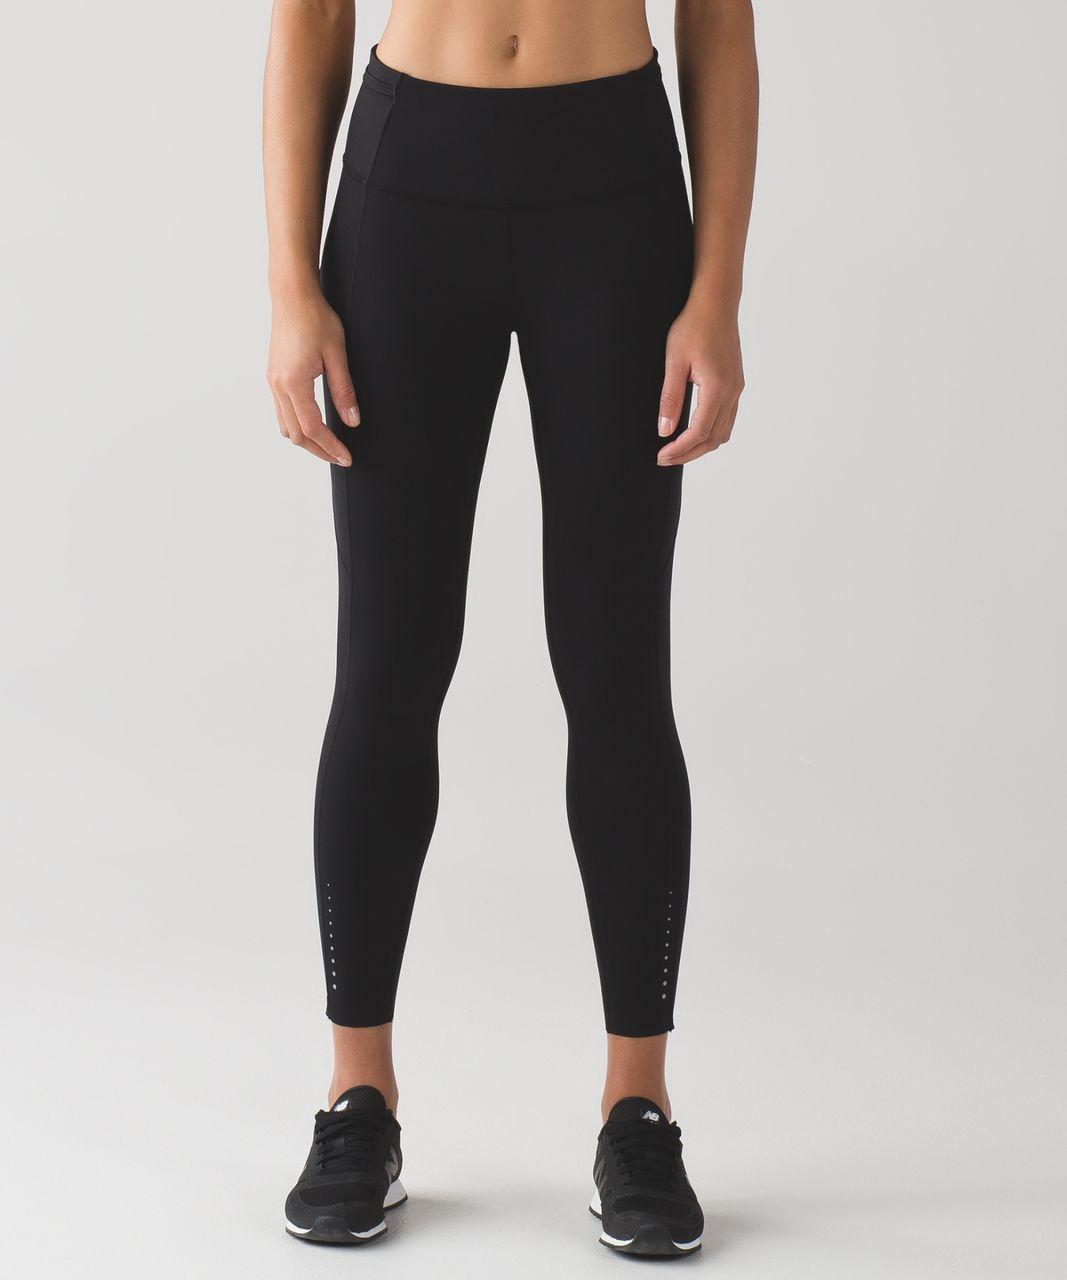 lululemon black fast and free 78 tight activewear bottoms